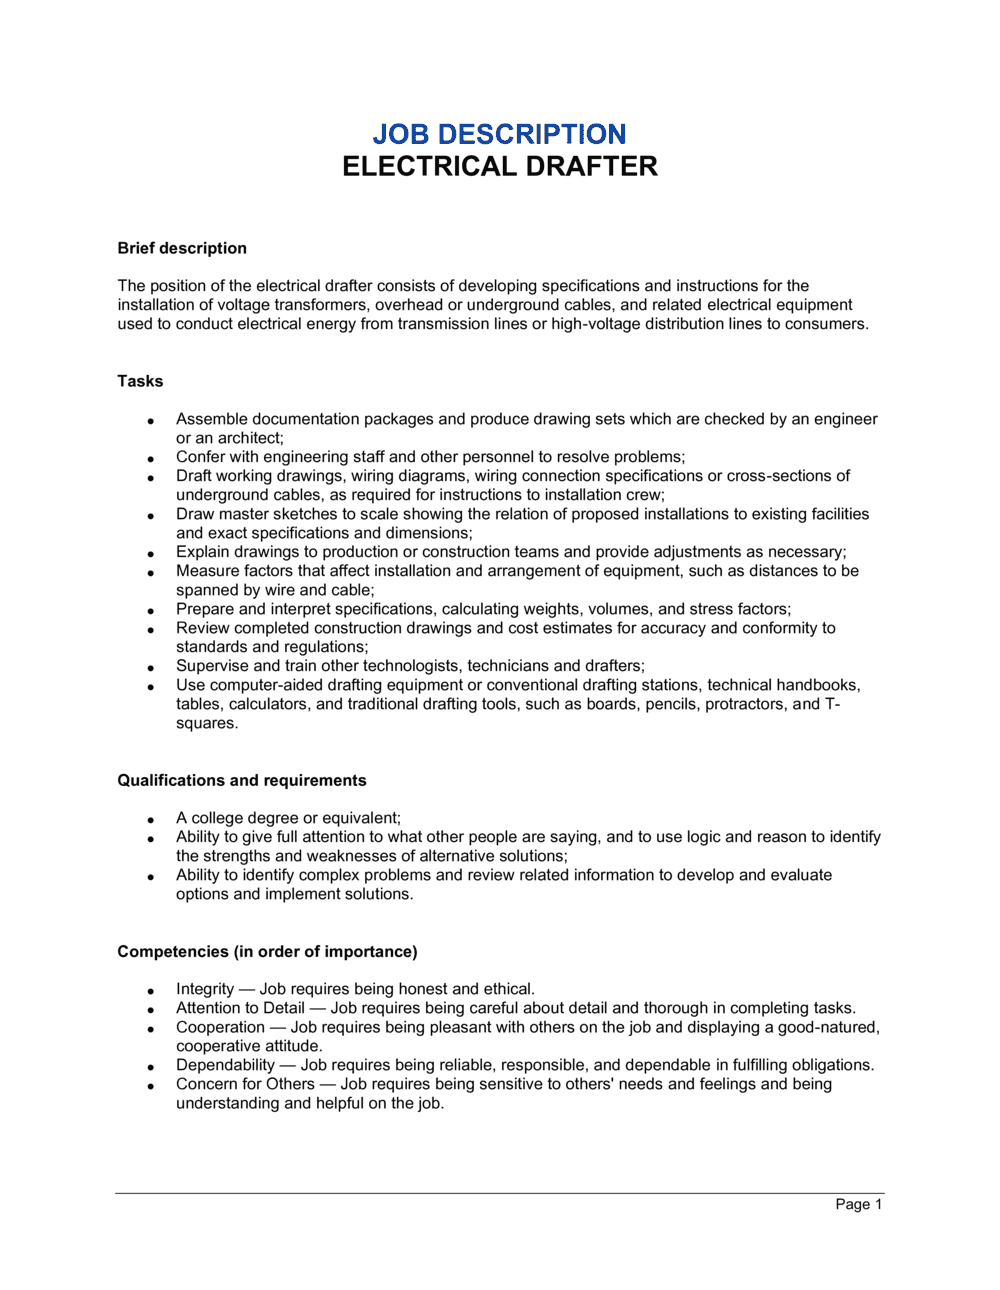 Business-in-a-Box's Electrical Drafter Job Description Template